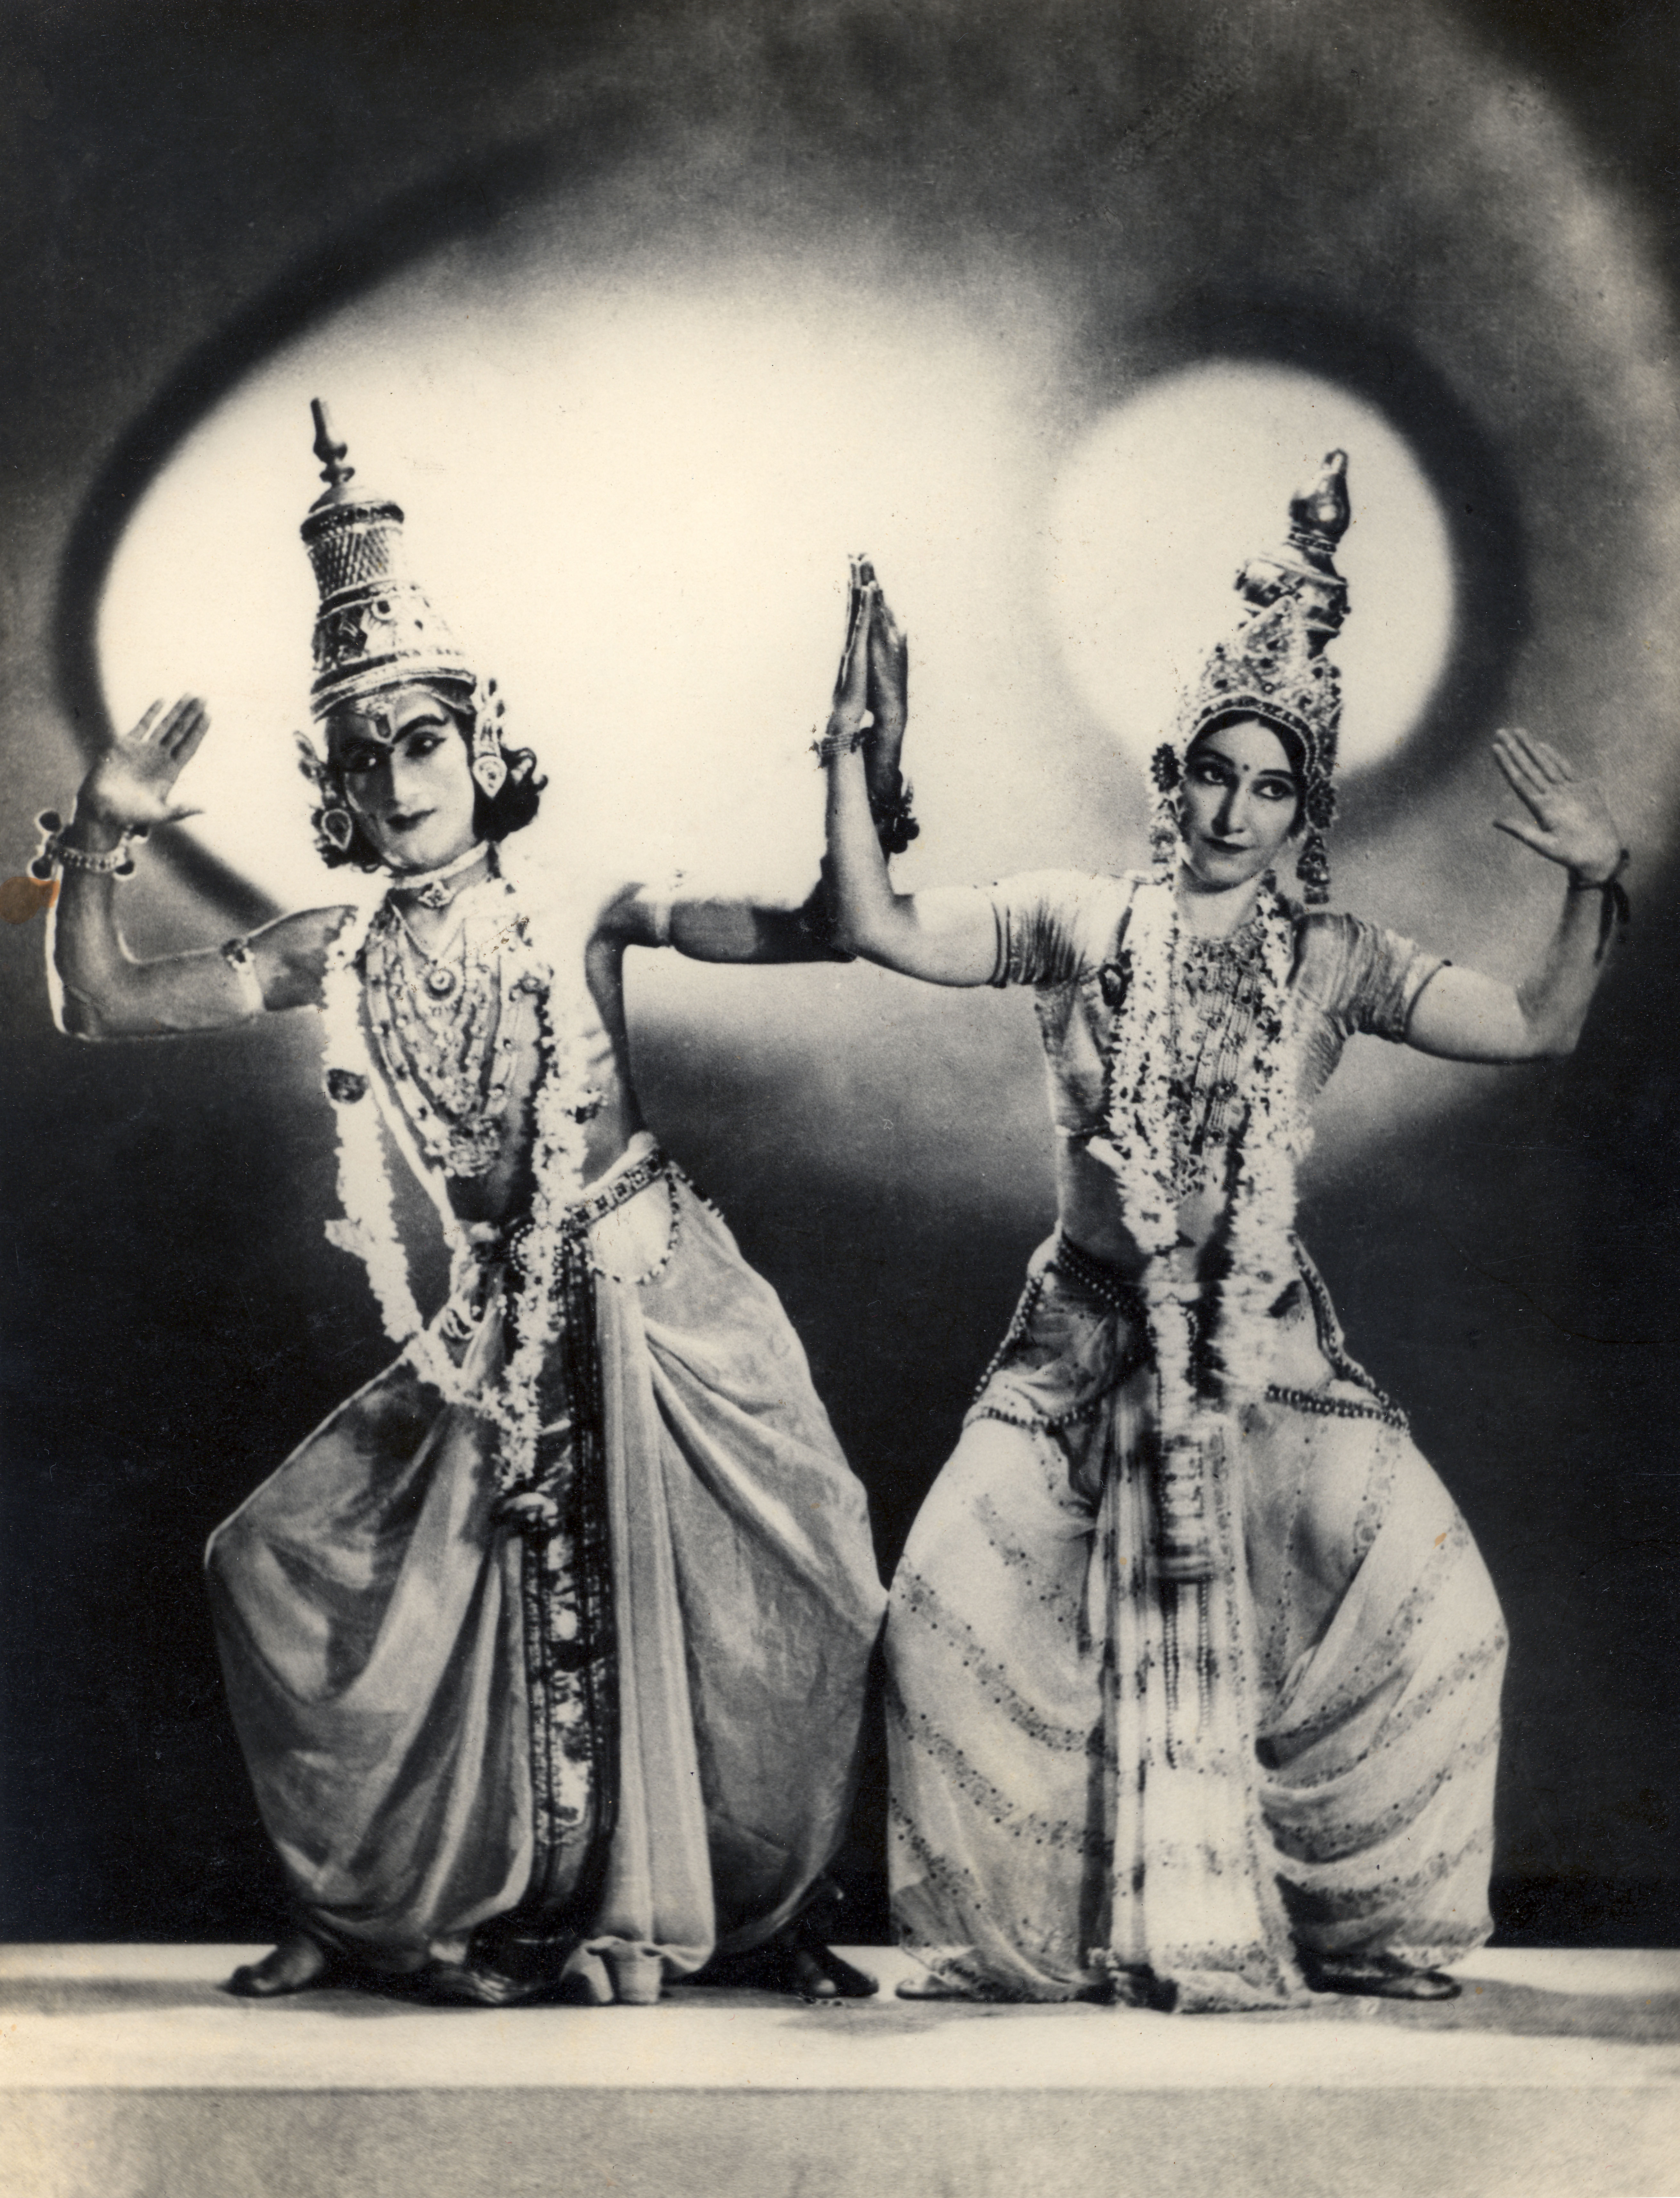 Esther Sherman (right), known as Ragini Devi, and Guru Gopinath performing the Lakshmi Narayan Dance, c. 1933 Bombay, Maharashtra